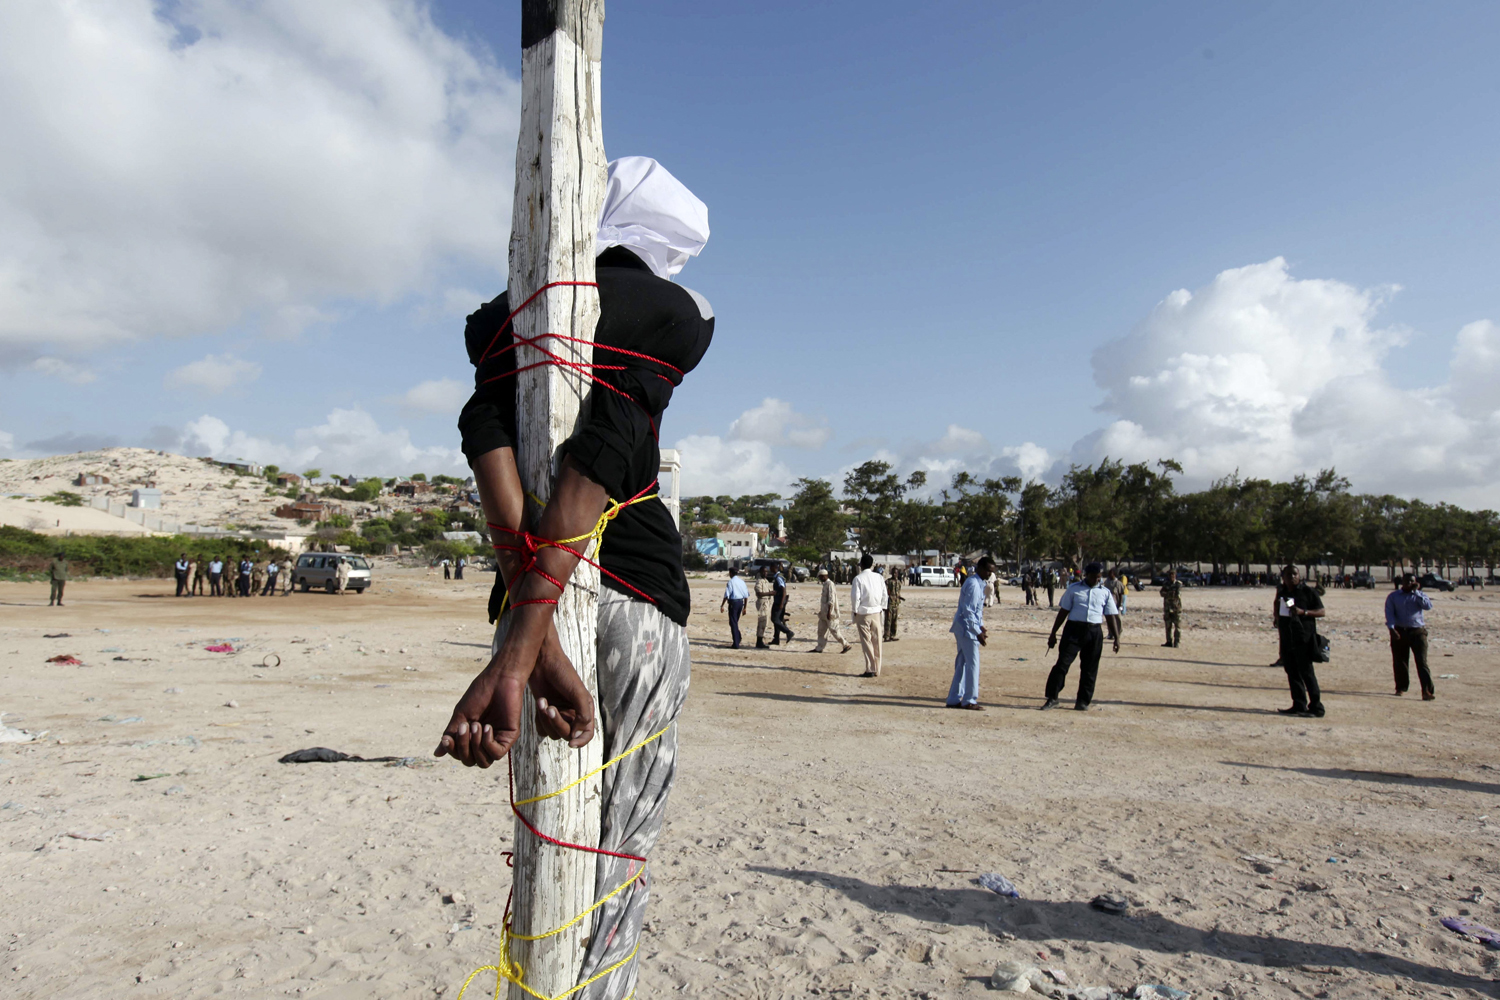 Aug. 17, 2013. Adan Sheikh Abdi Sheikh, who has been sentenced to death for the murder of journalist Hassan Yusuf Absuge, stands tied to a pole before he is executed by shooting at close range at the Iskola Bulisiya square in the capital Mogadishu.